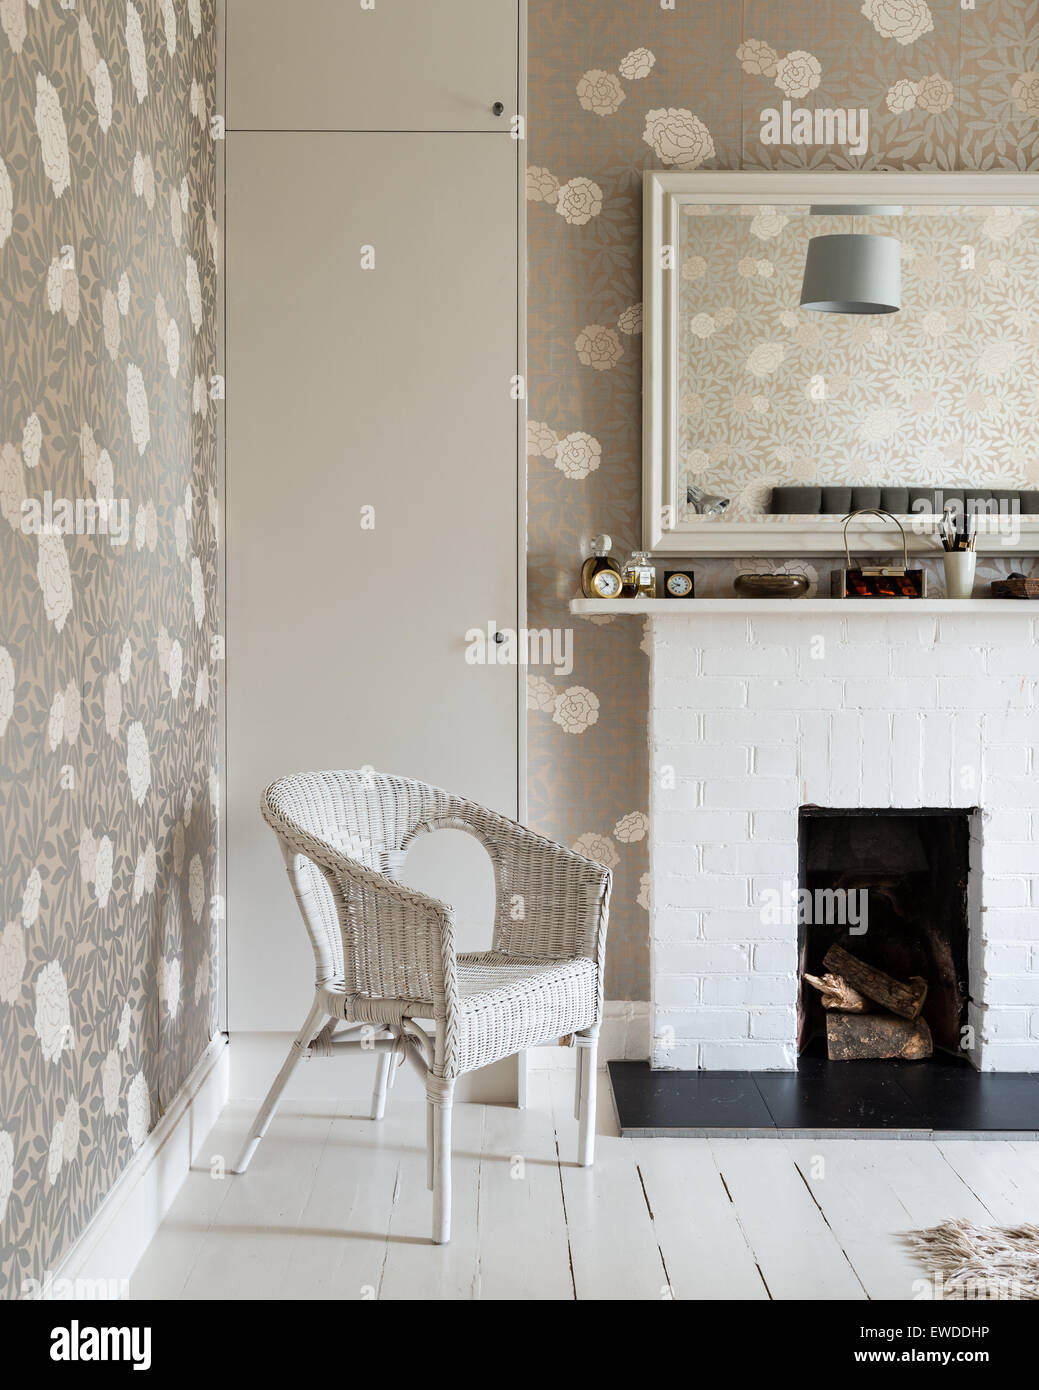 Stock Photo   White Cane Chair In Bedroom With Metallic Floral Print  Wallpaper By Osbourne U0026 Little And Brick Fireplace